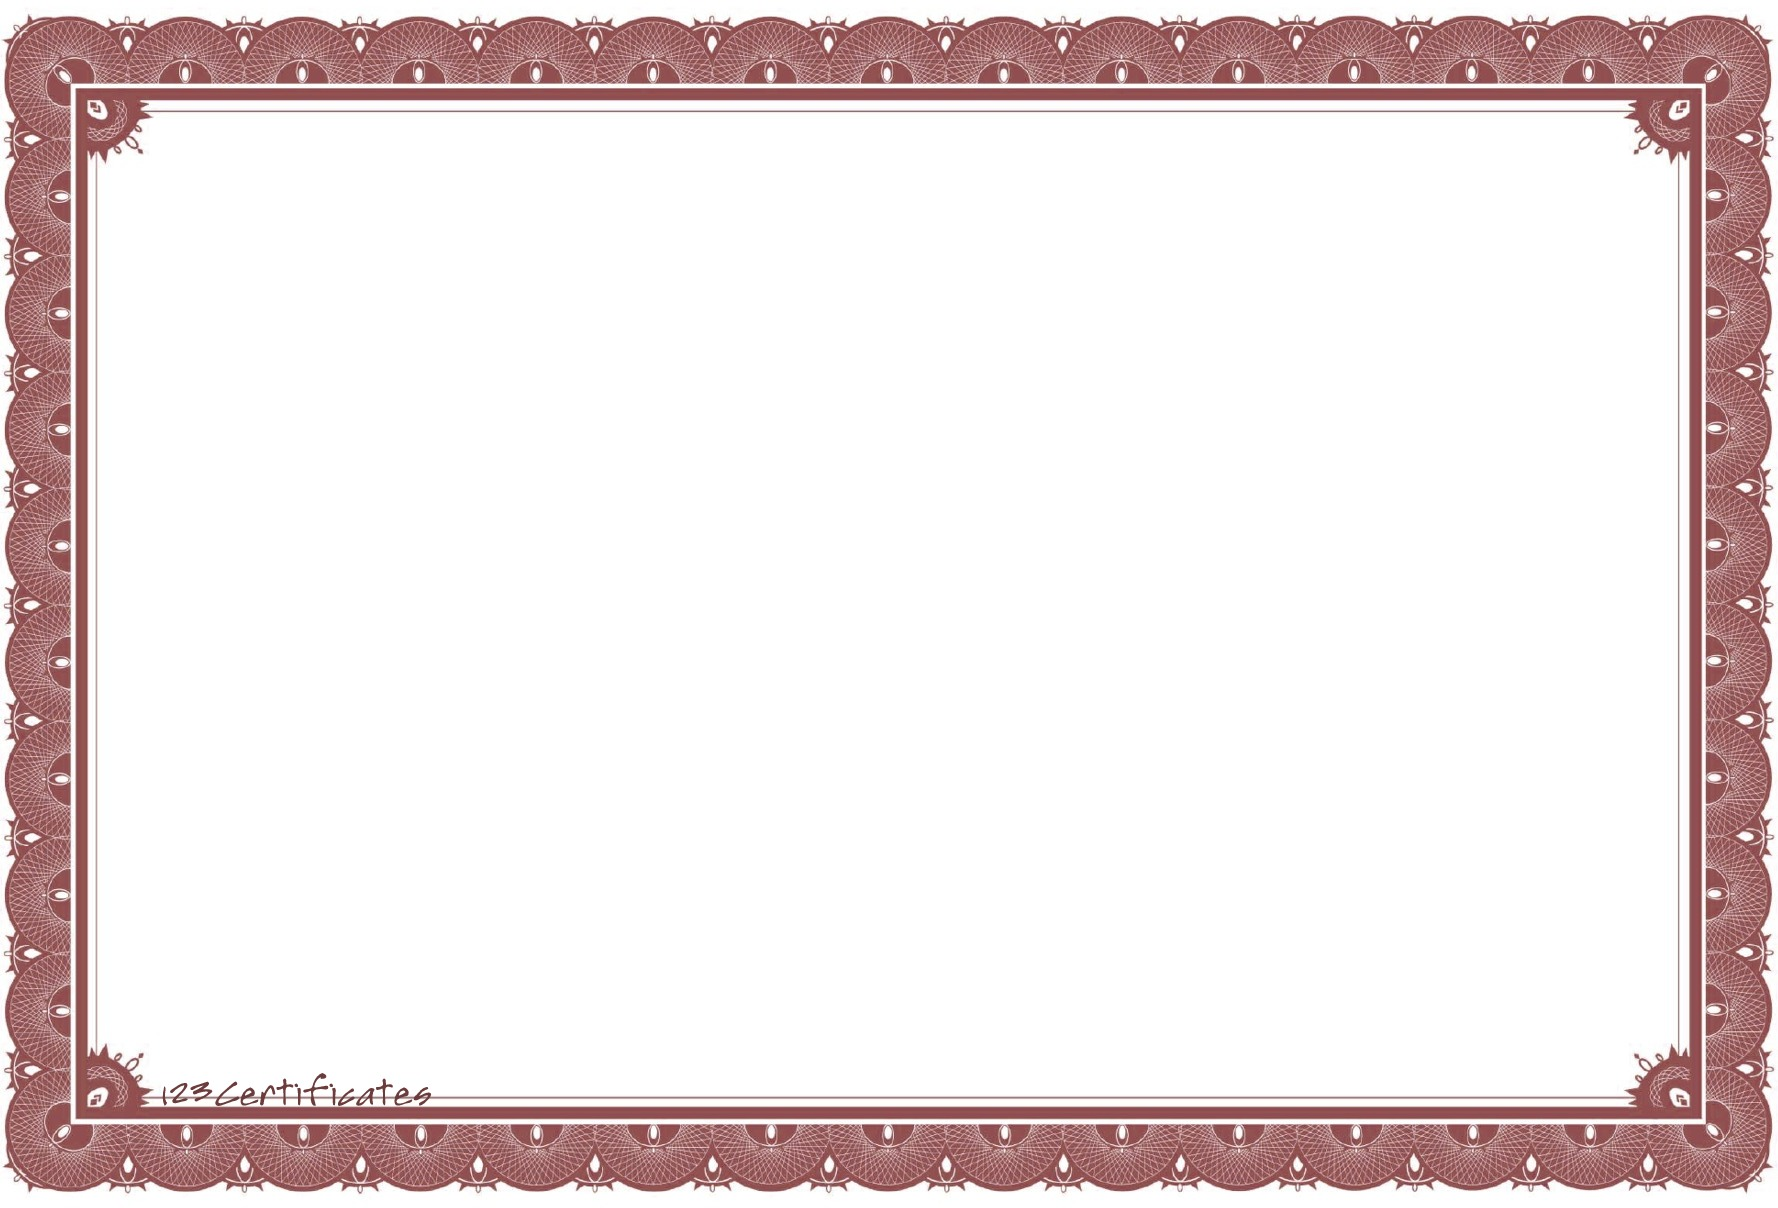 Free certificate borders to download certificate templates for – Certificate Borders Free Download